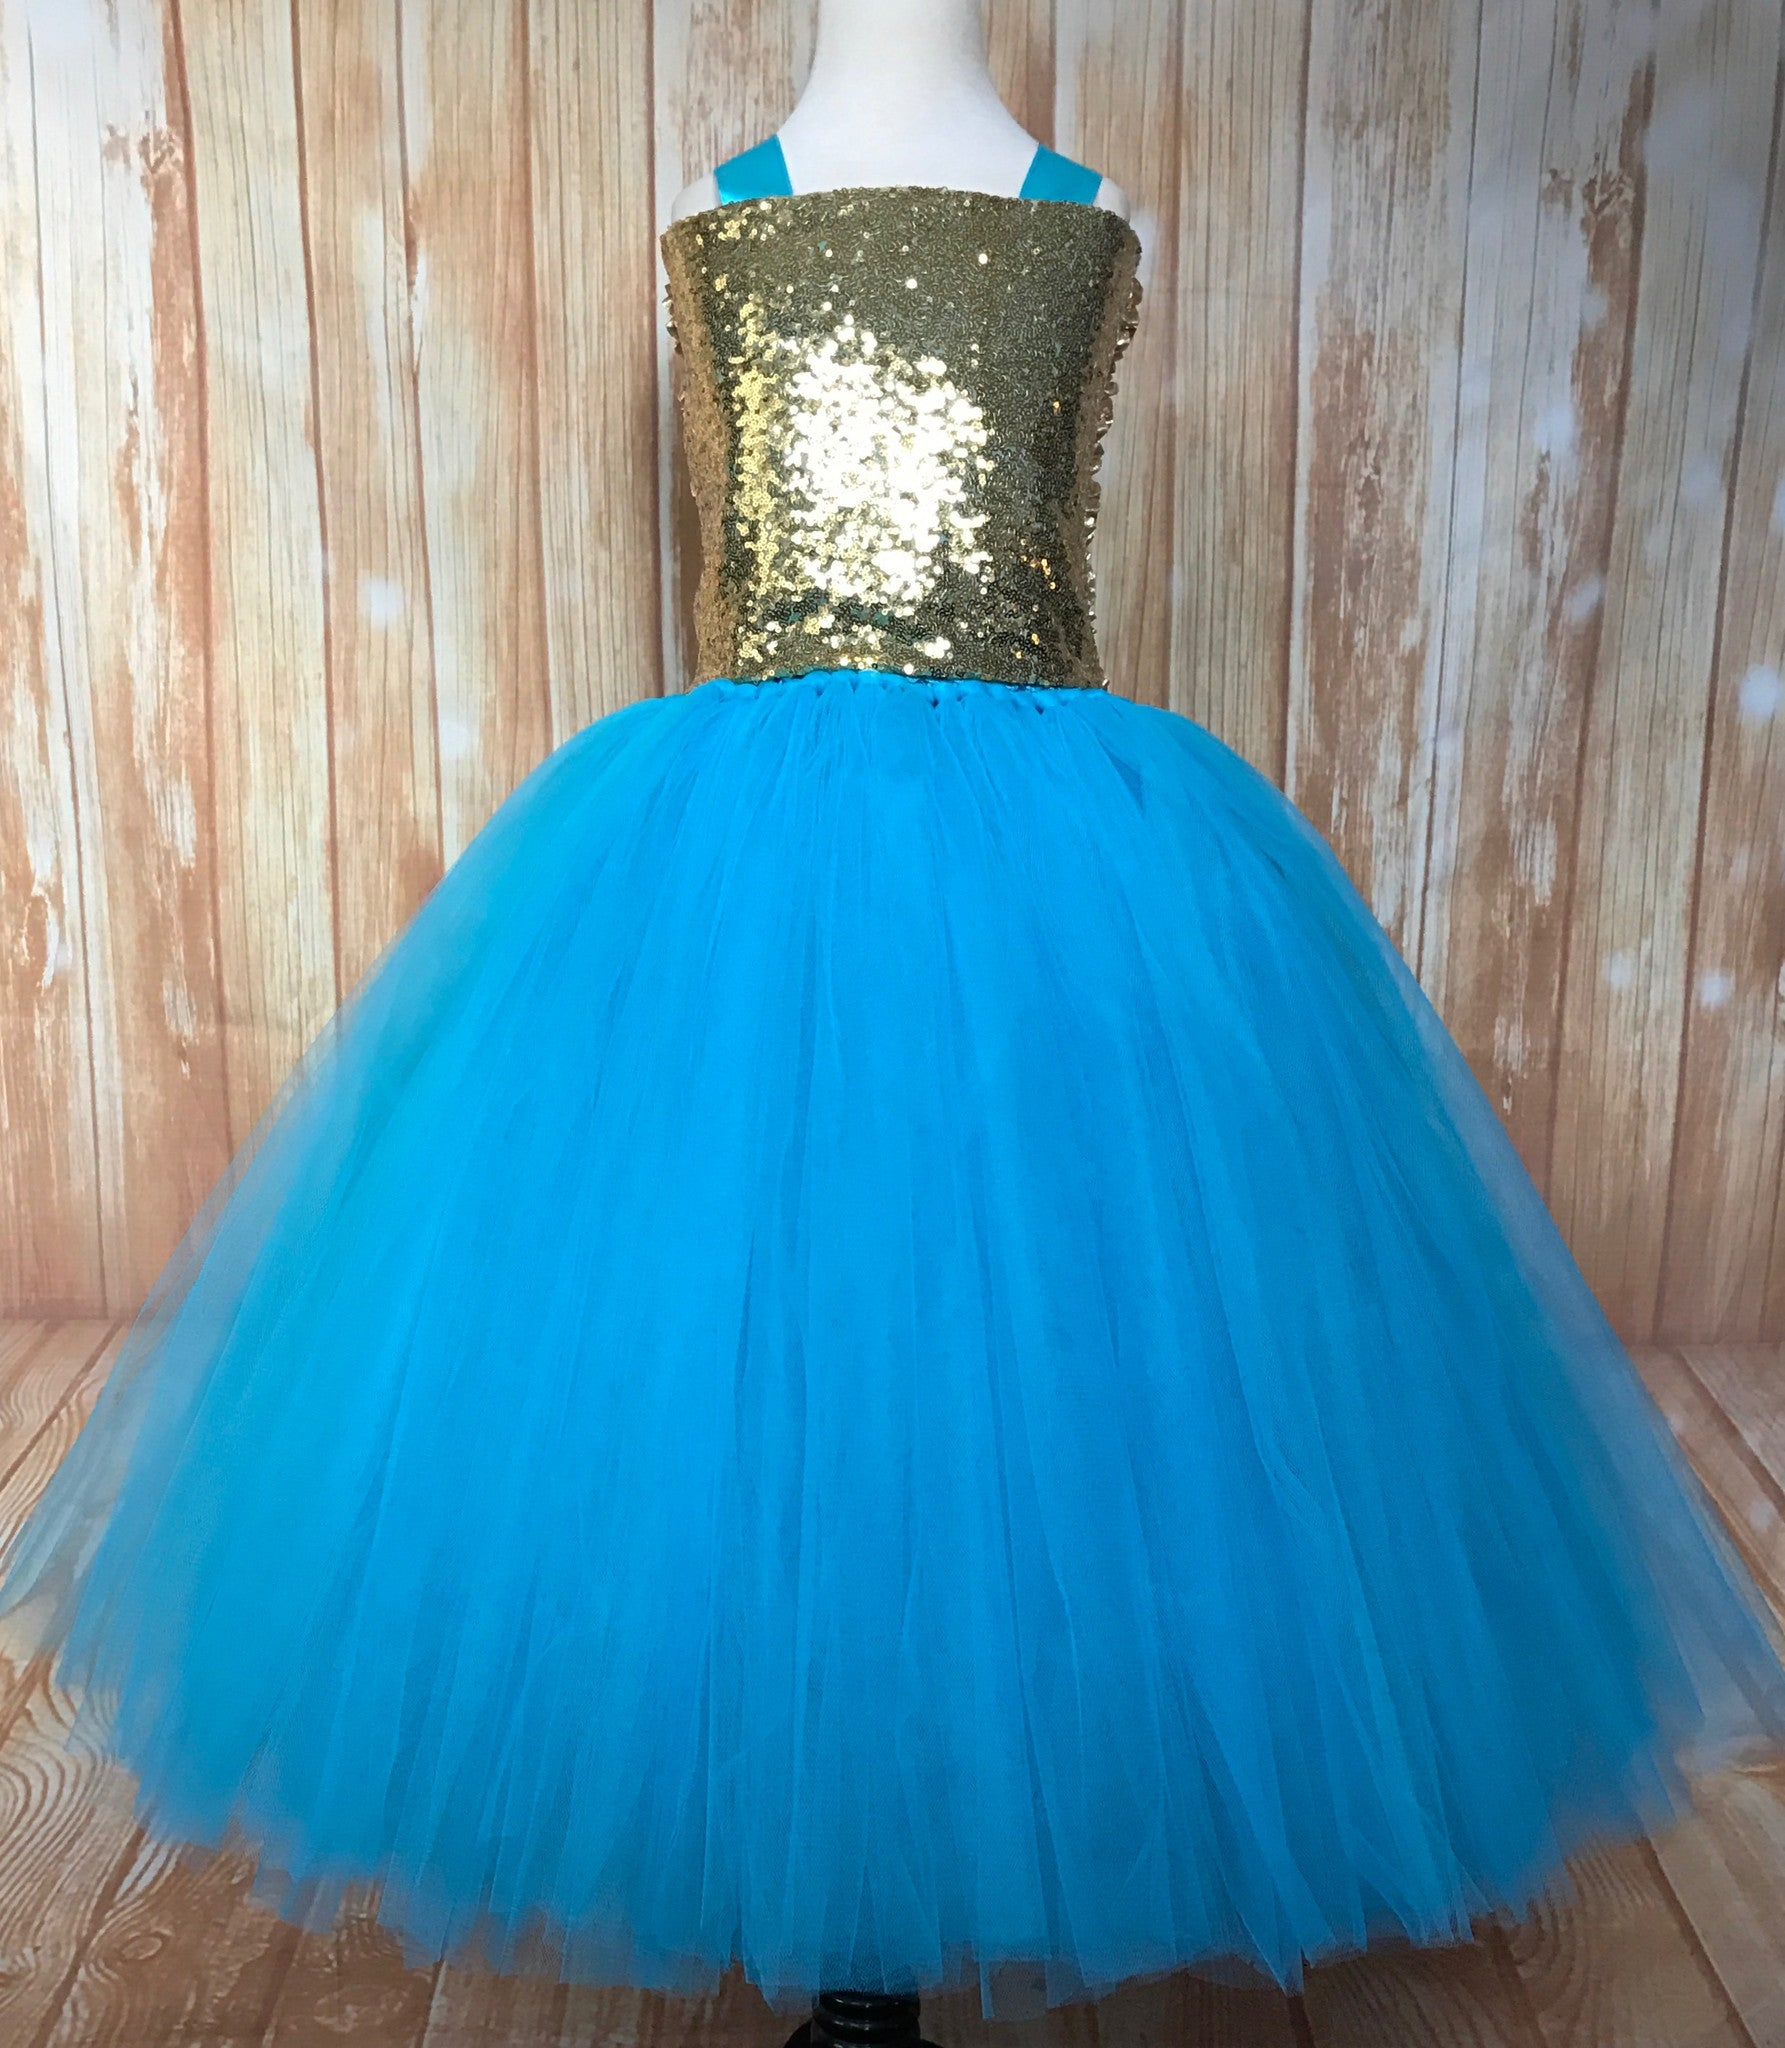 Turquoise & Gold Tutu, Girls Turquoise Gold Dress, Turquoise Flower Girl Dress - Little Ladybug Tutus